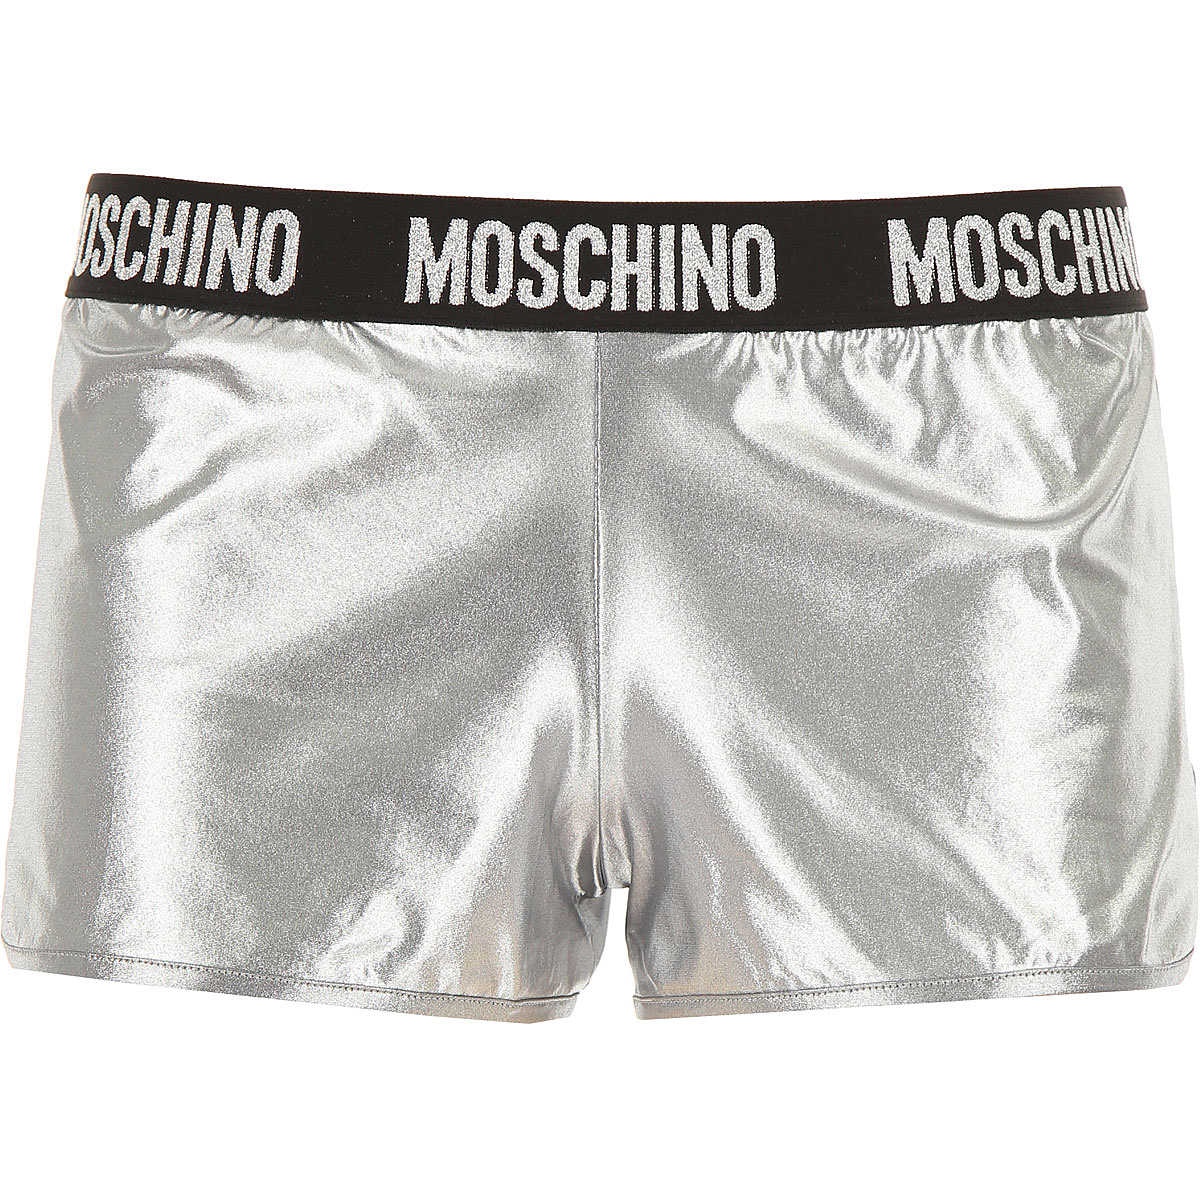 Moschino Shorts for Women On Sale Silver - GOOFASH